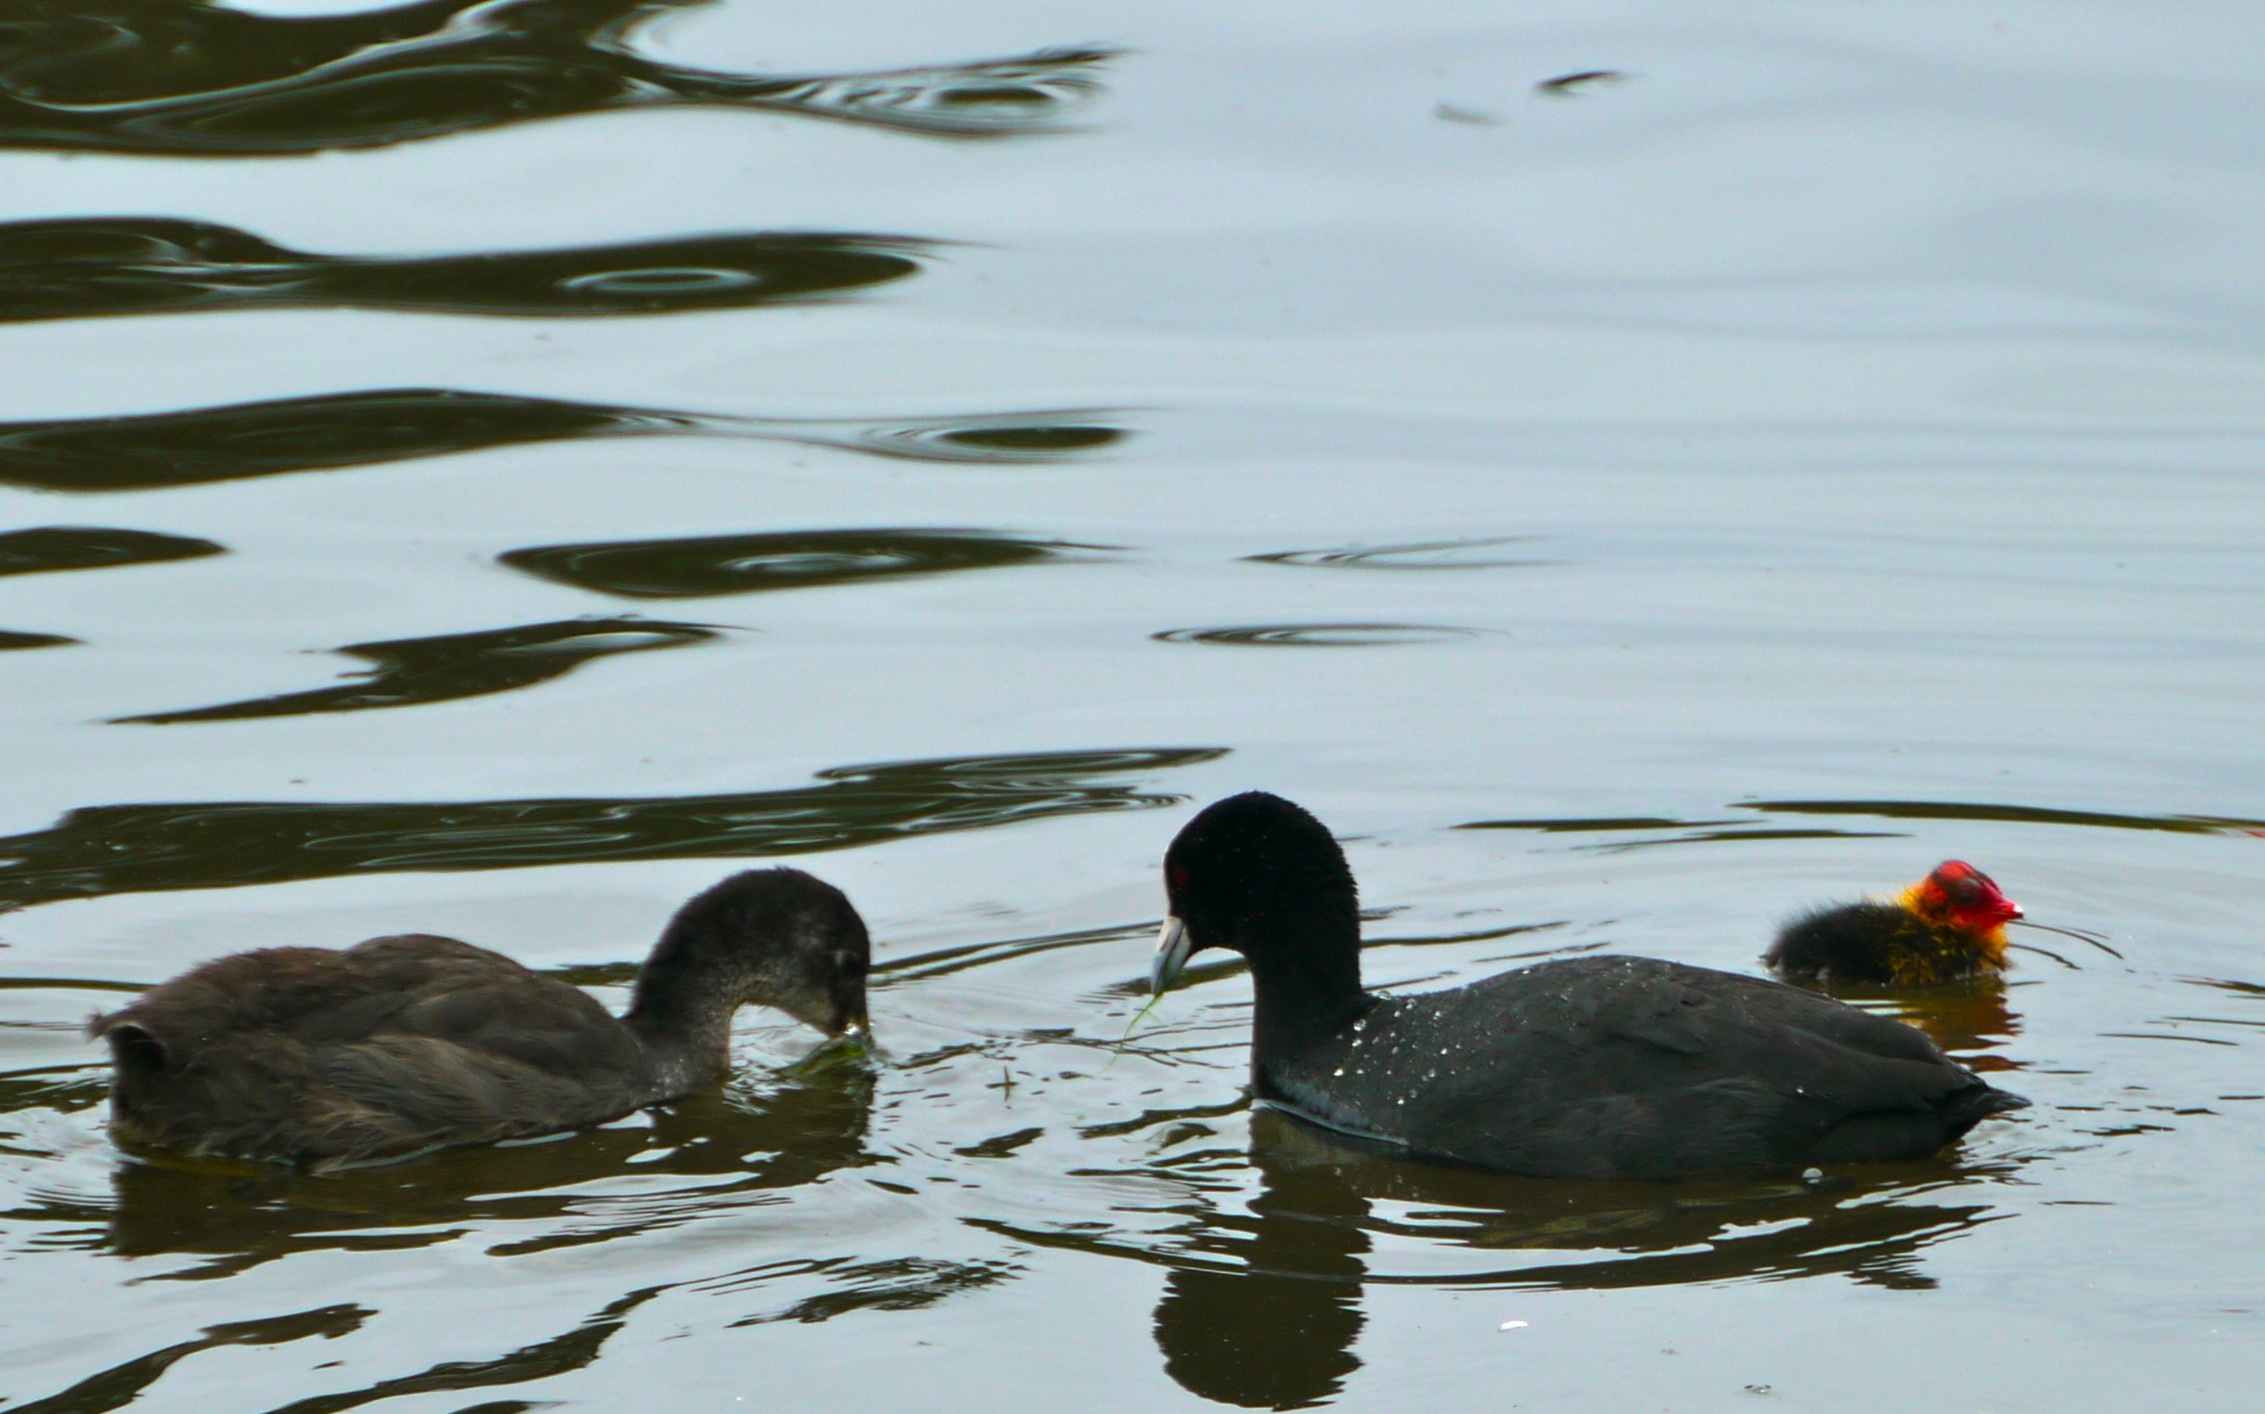 Three generations of Coot in one photo, at Aireys Inlet, 2 Dec 2011